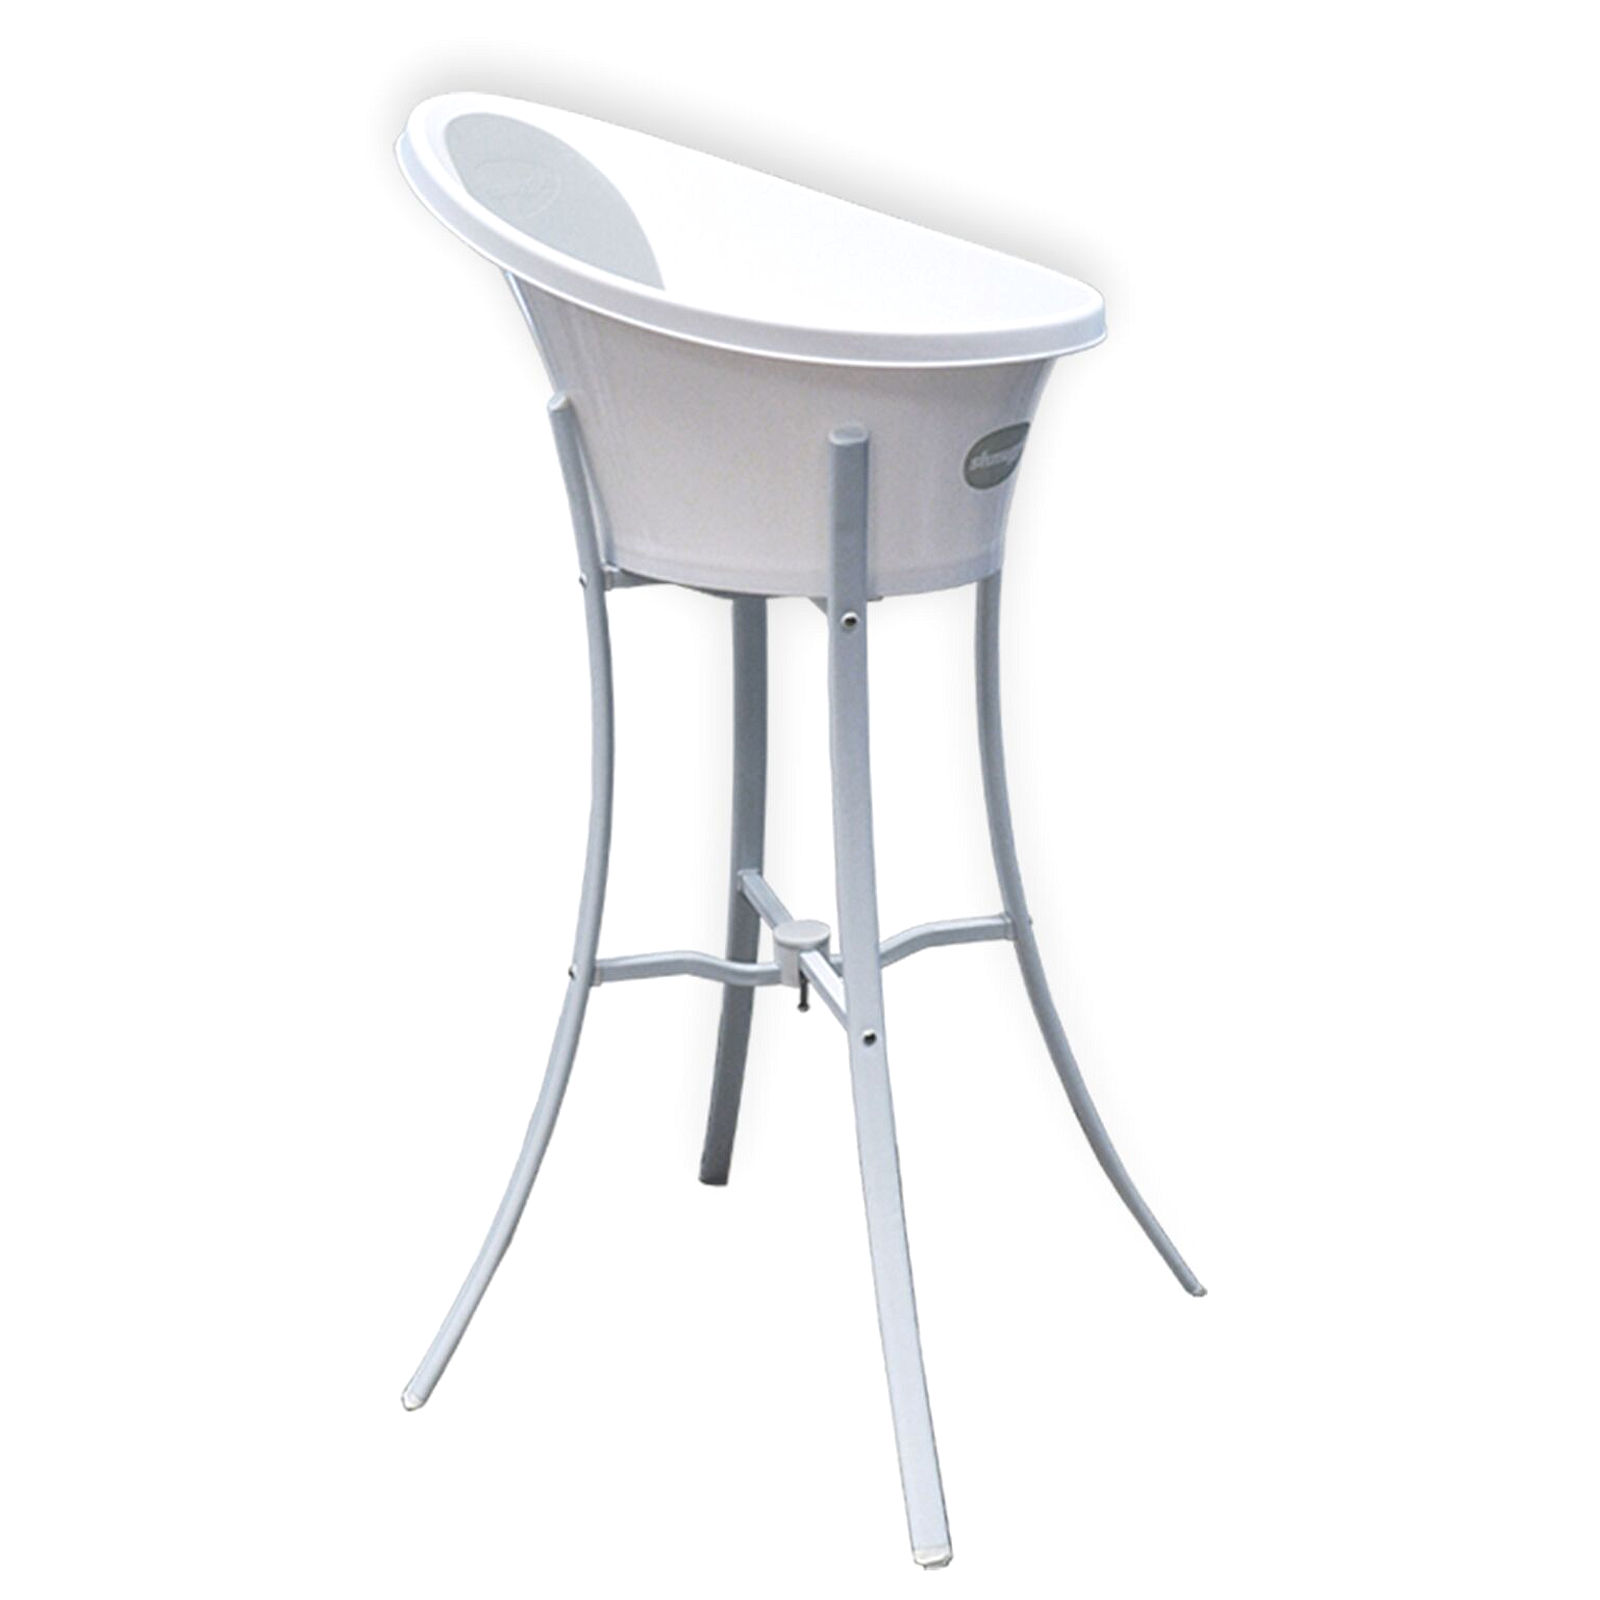 Shnuggle Folding Baby Bath Stand - White | Buy at Online4baby